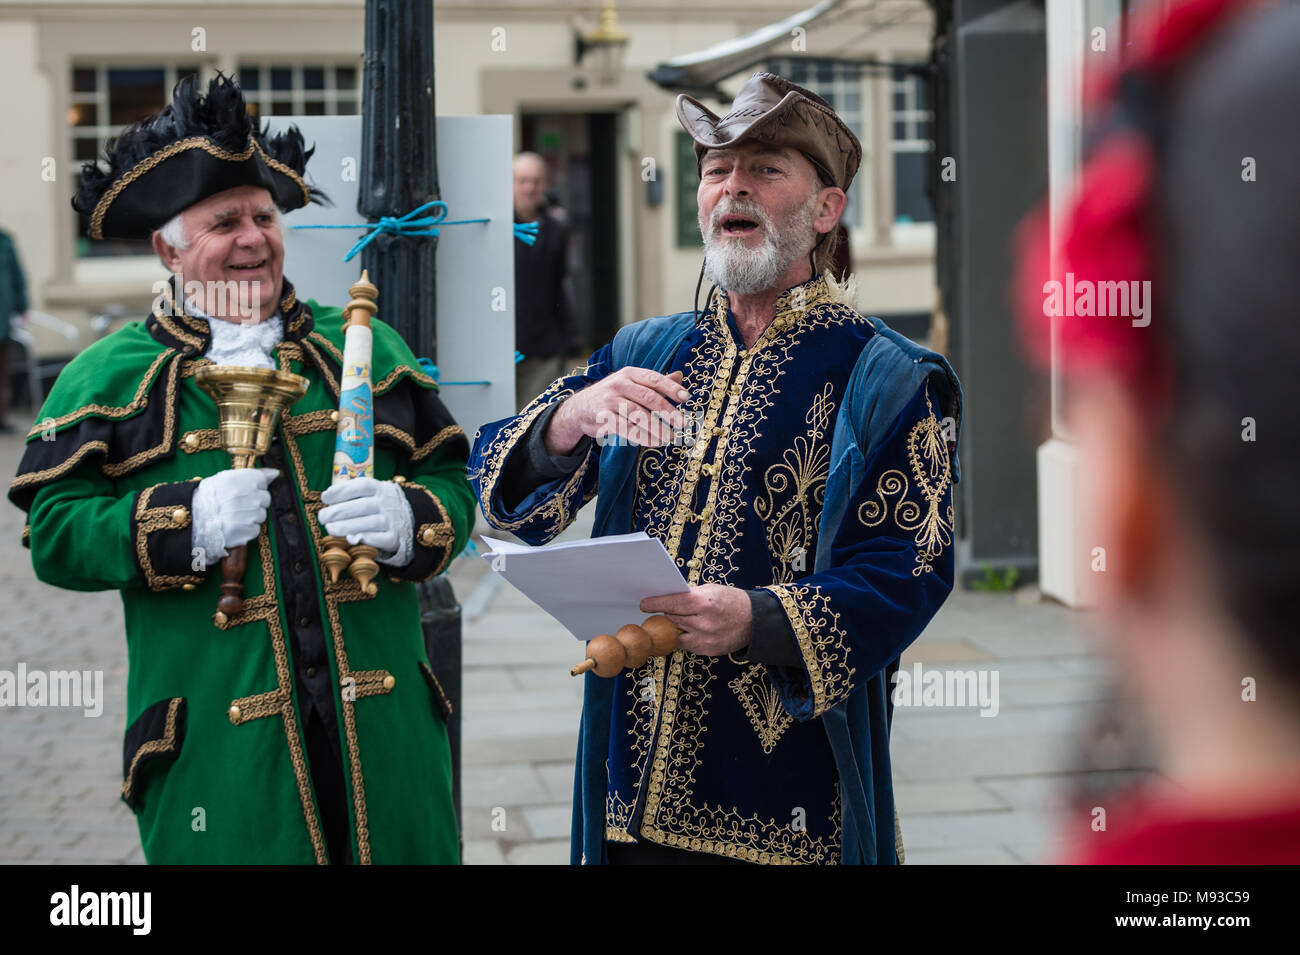 The Town Crier of Glastonbury (David Greenway) announces this year's competition to choose the next Bard of Glastonbury. - Stock Image